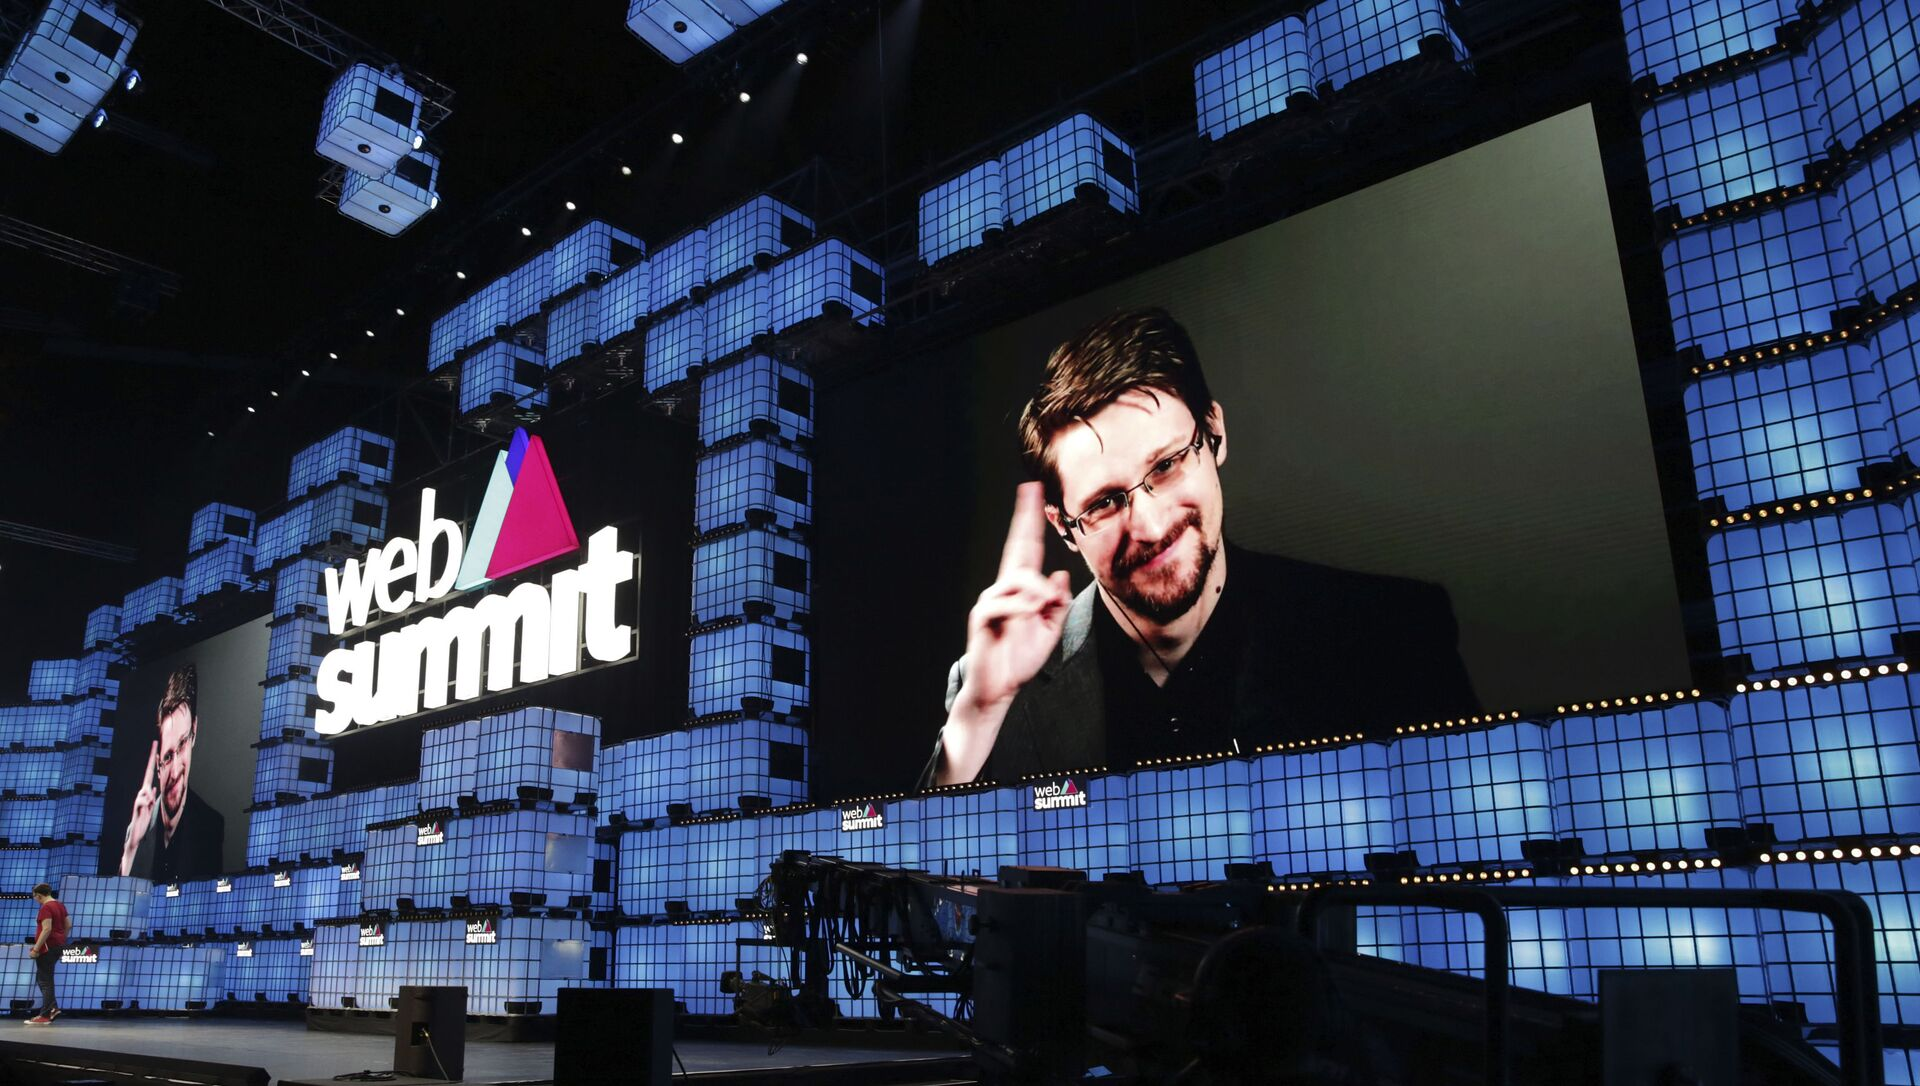 Former U.S. National Security Agency contractor Edward Snowden addresses attendees through video link at the Web Summit technology conference in Lisbon, Monday, Nov. 4, 2019. Snowden has been living in Russia to escape U.S. prosecution after leaking classified documents detailing government surveillance programs - Sputnik International, 1920, 24.05.2021